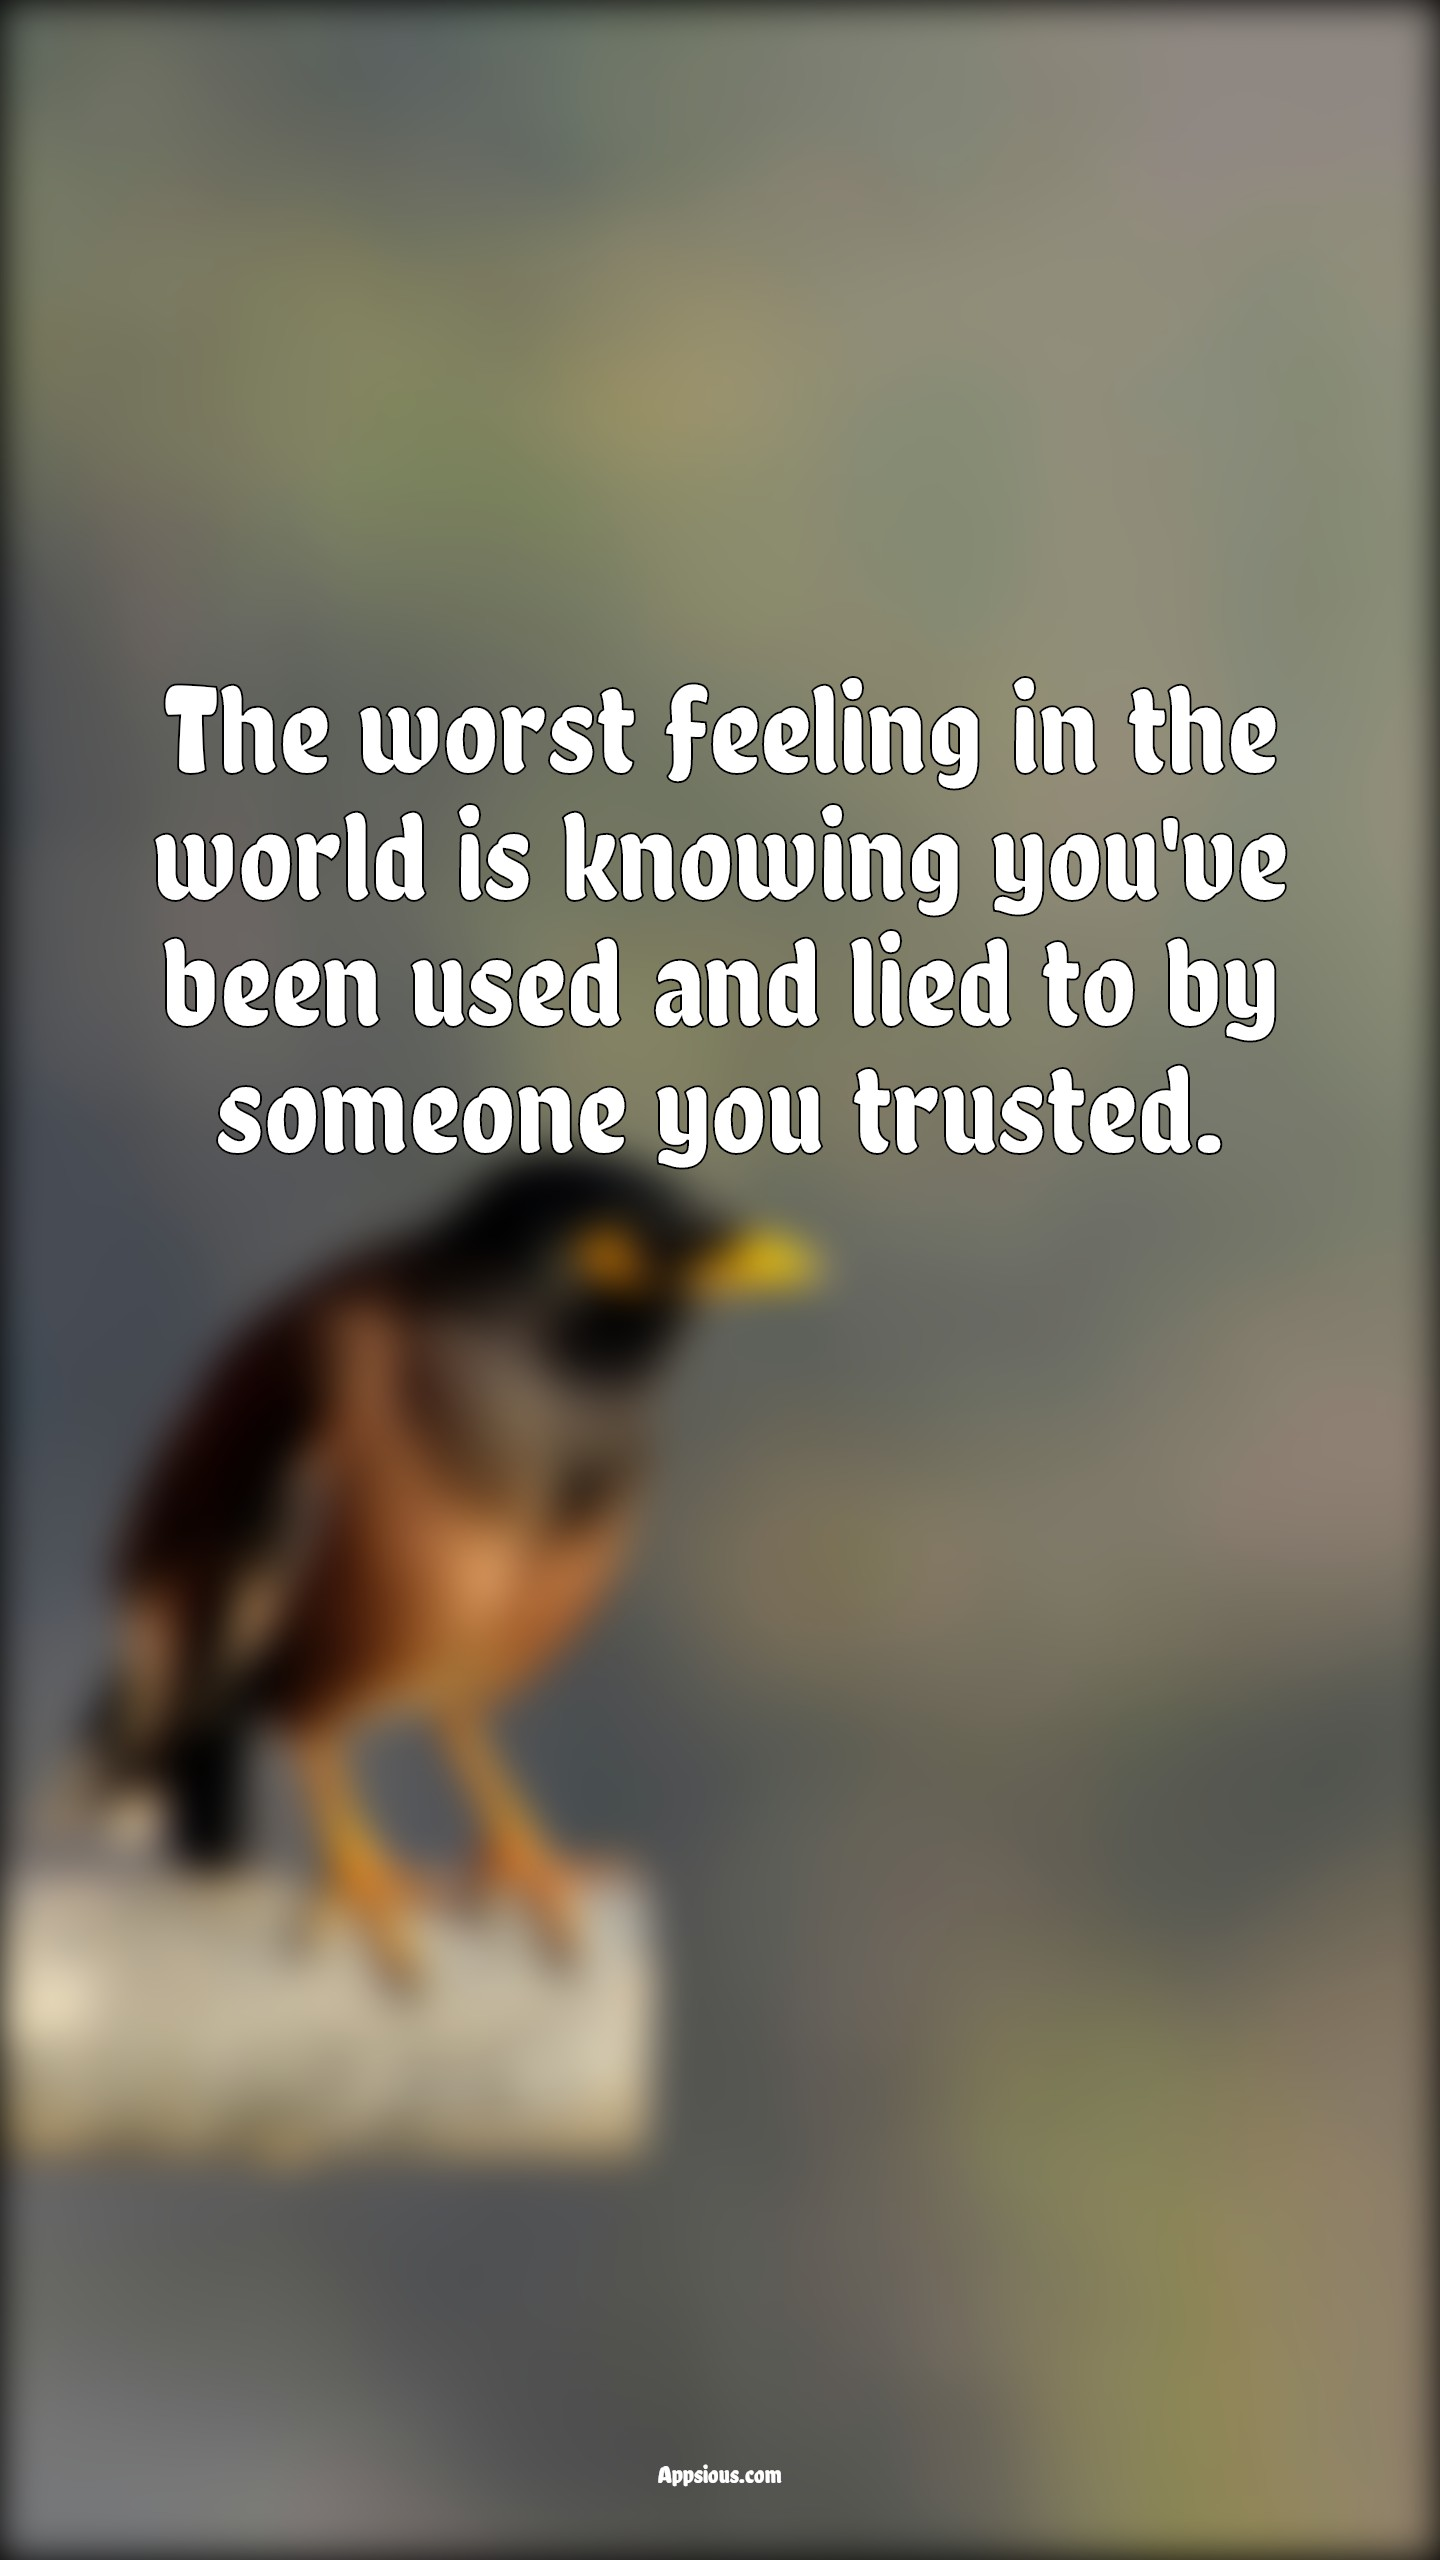 The worst feeling in the world is knowing you've been used and lied to by someone you trusted.